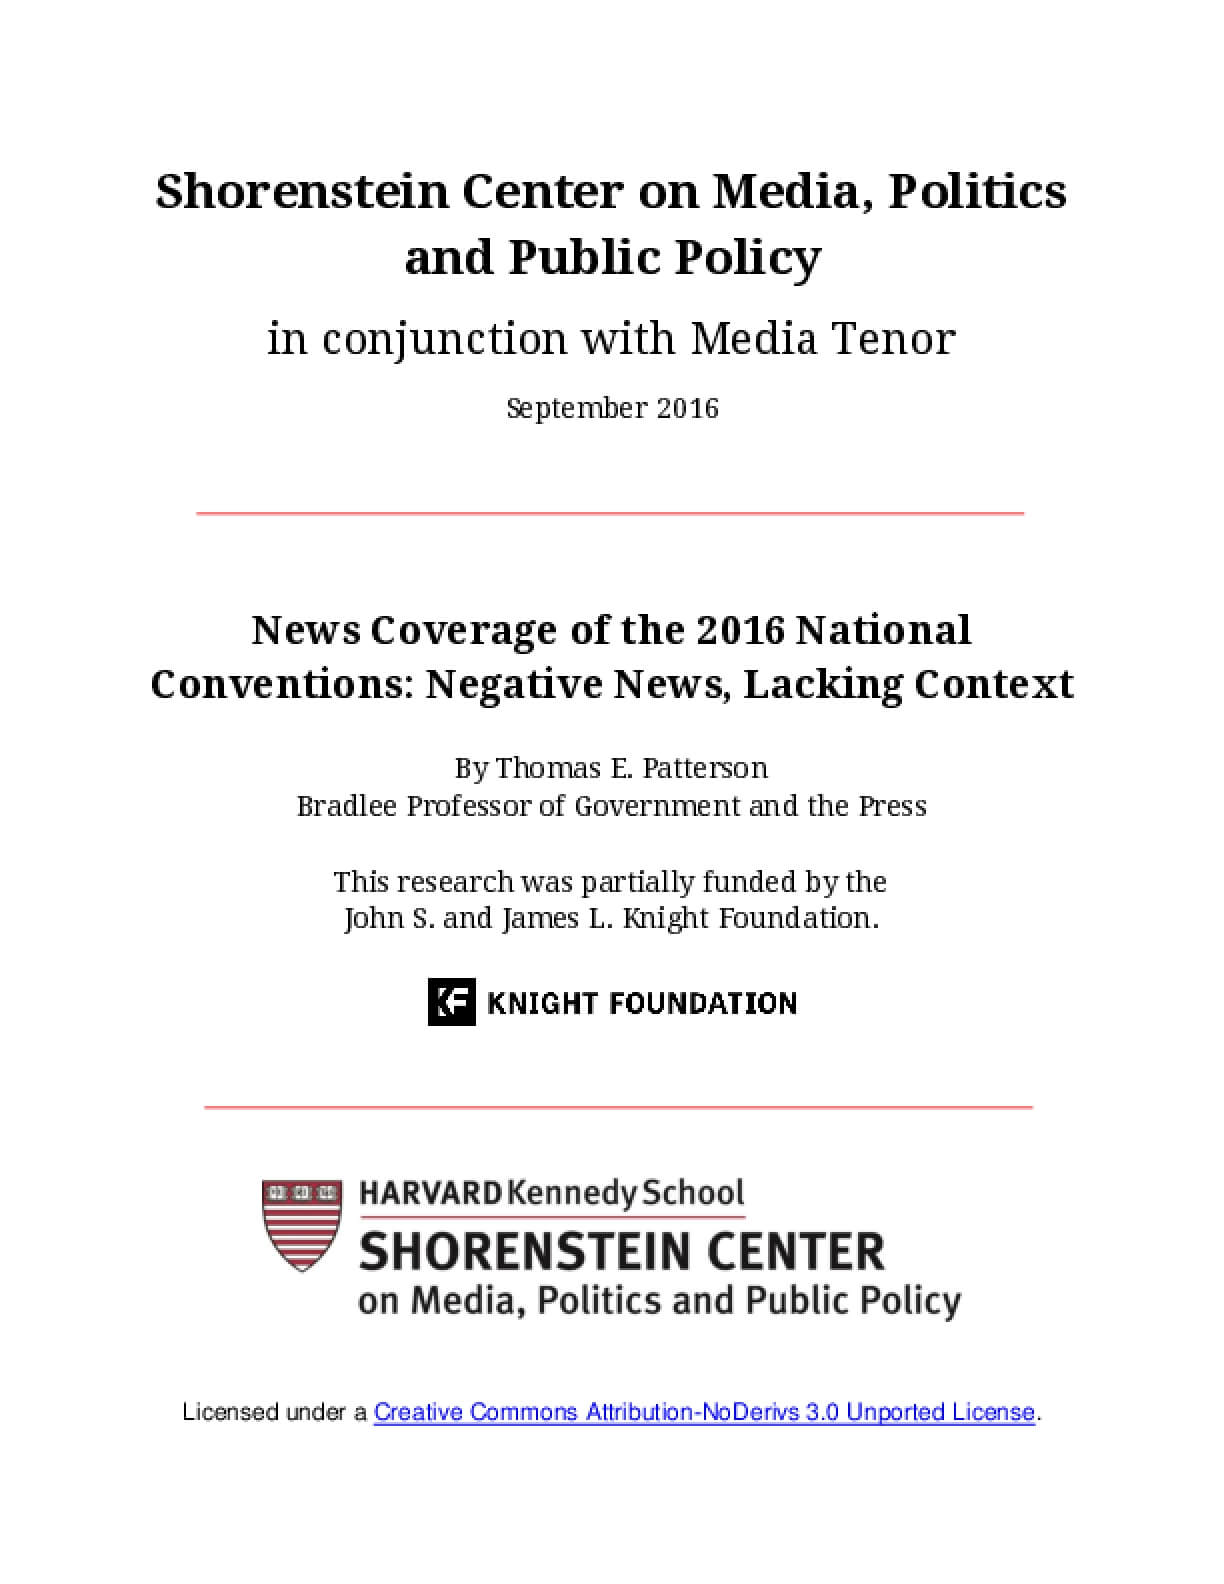 News Coverage of the 2016 National Conventions: Negative News, Lacking Context